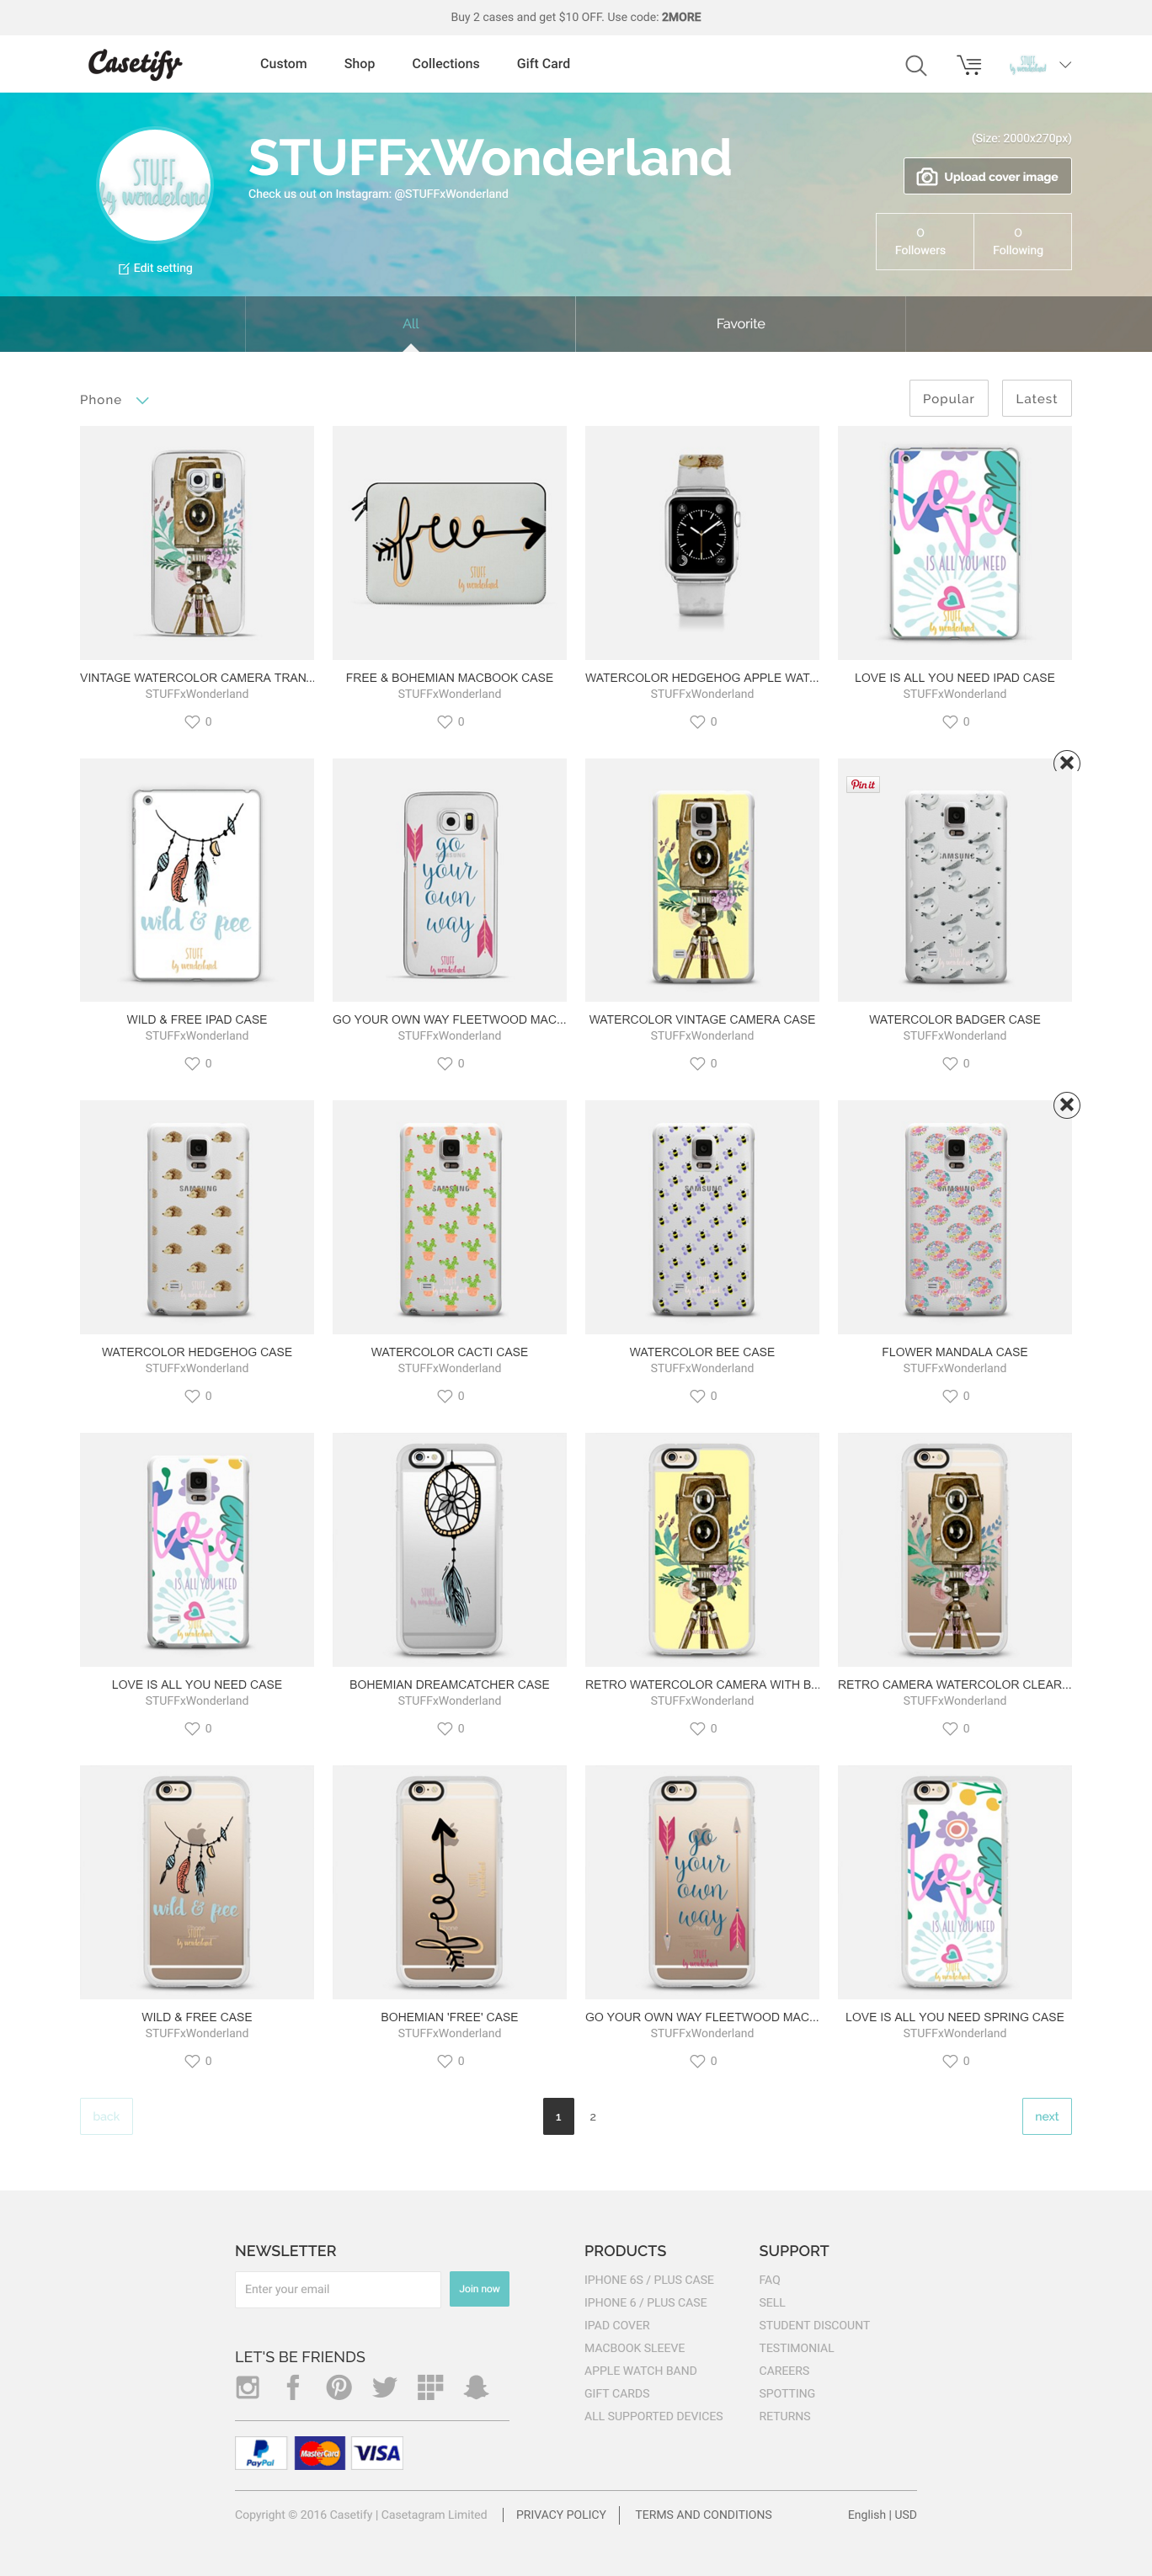 STUFFxWonderland Casetify Shop Announcement